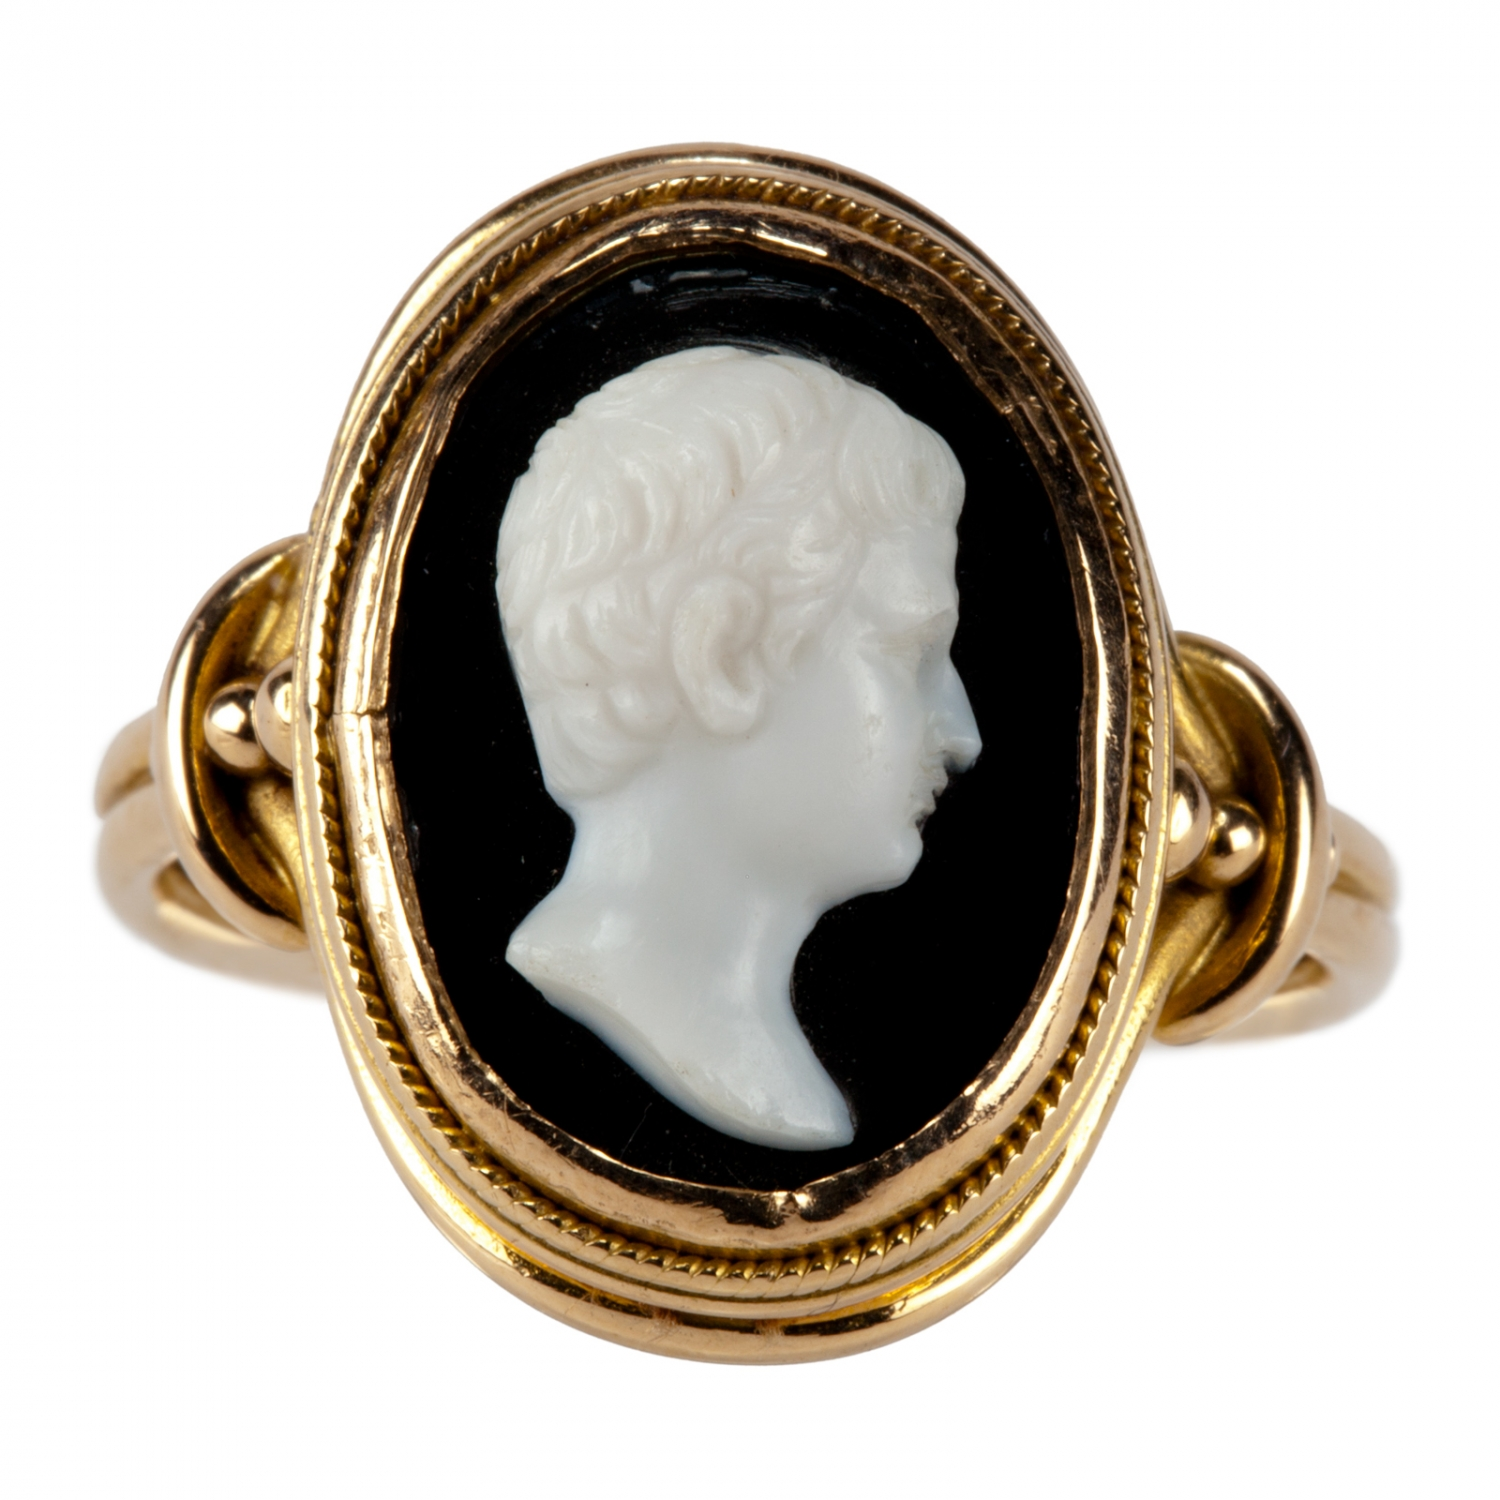 A gold ring set with an oval glass cameo of a classical male (Roman emperor Augustus) in profile. Made in Italy, 1867-1874.